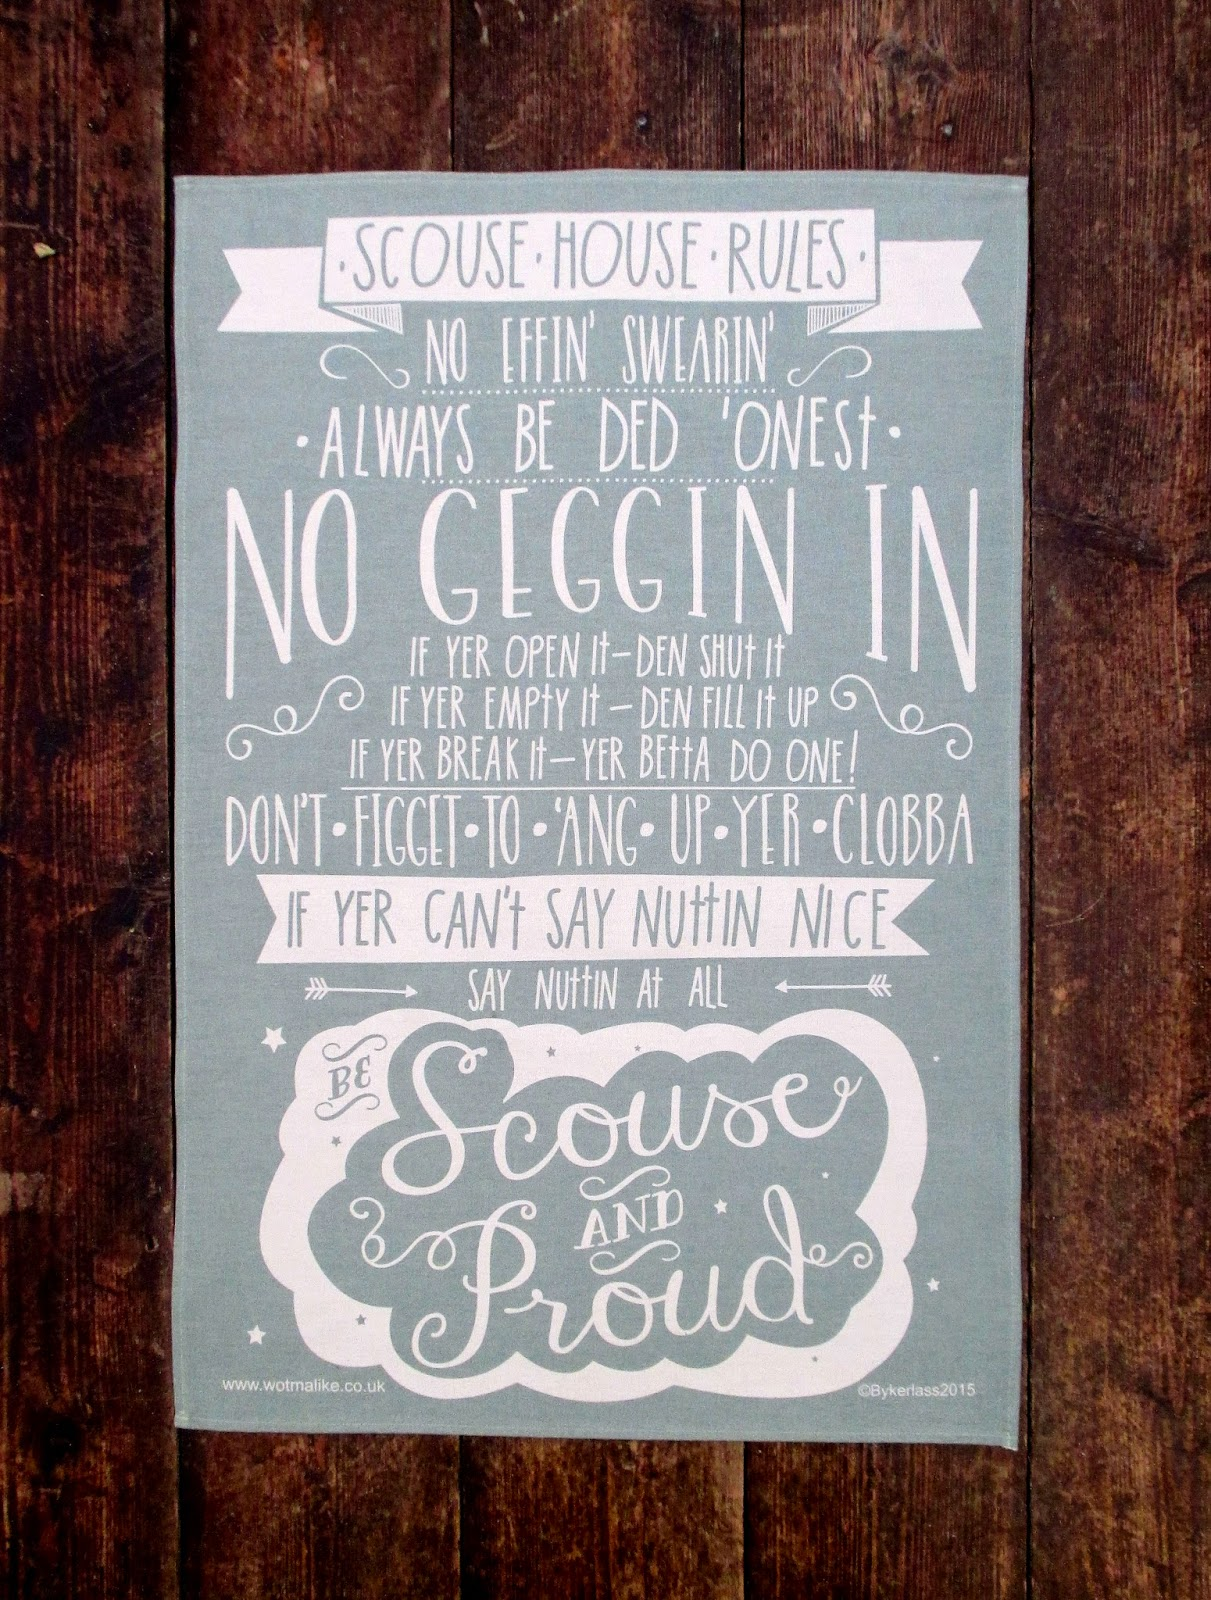 Scouse House Rules By Wotmalike